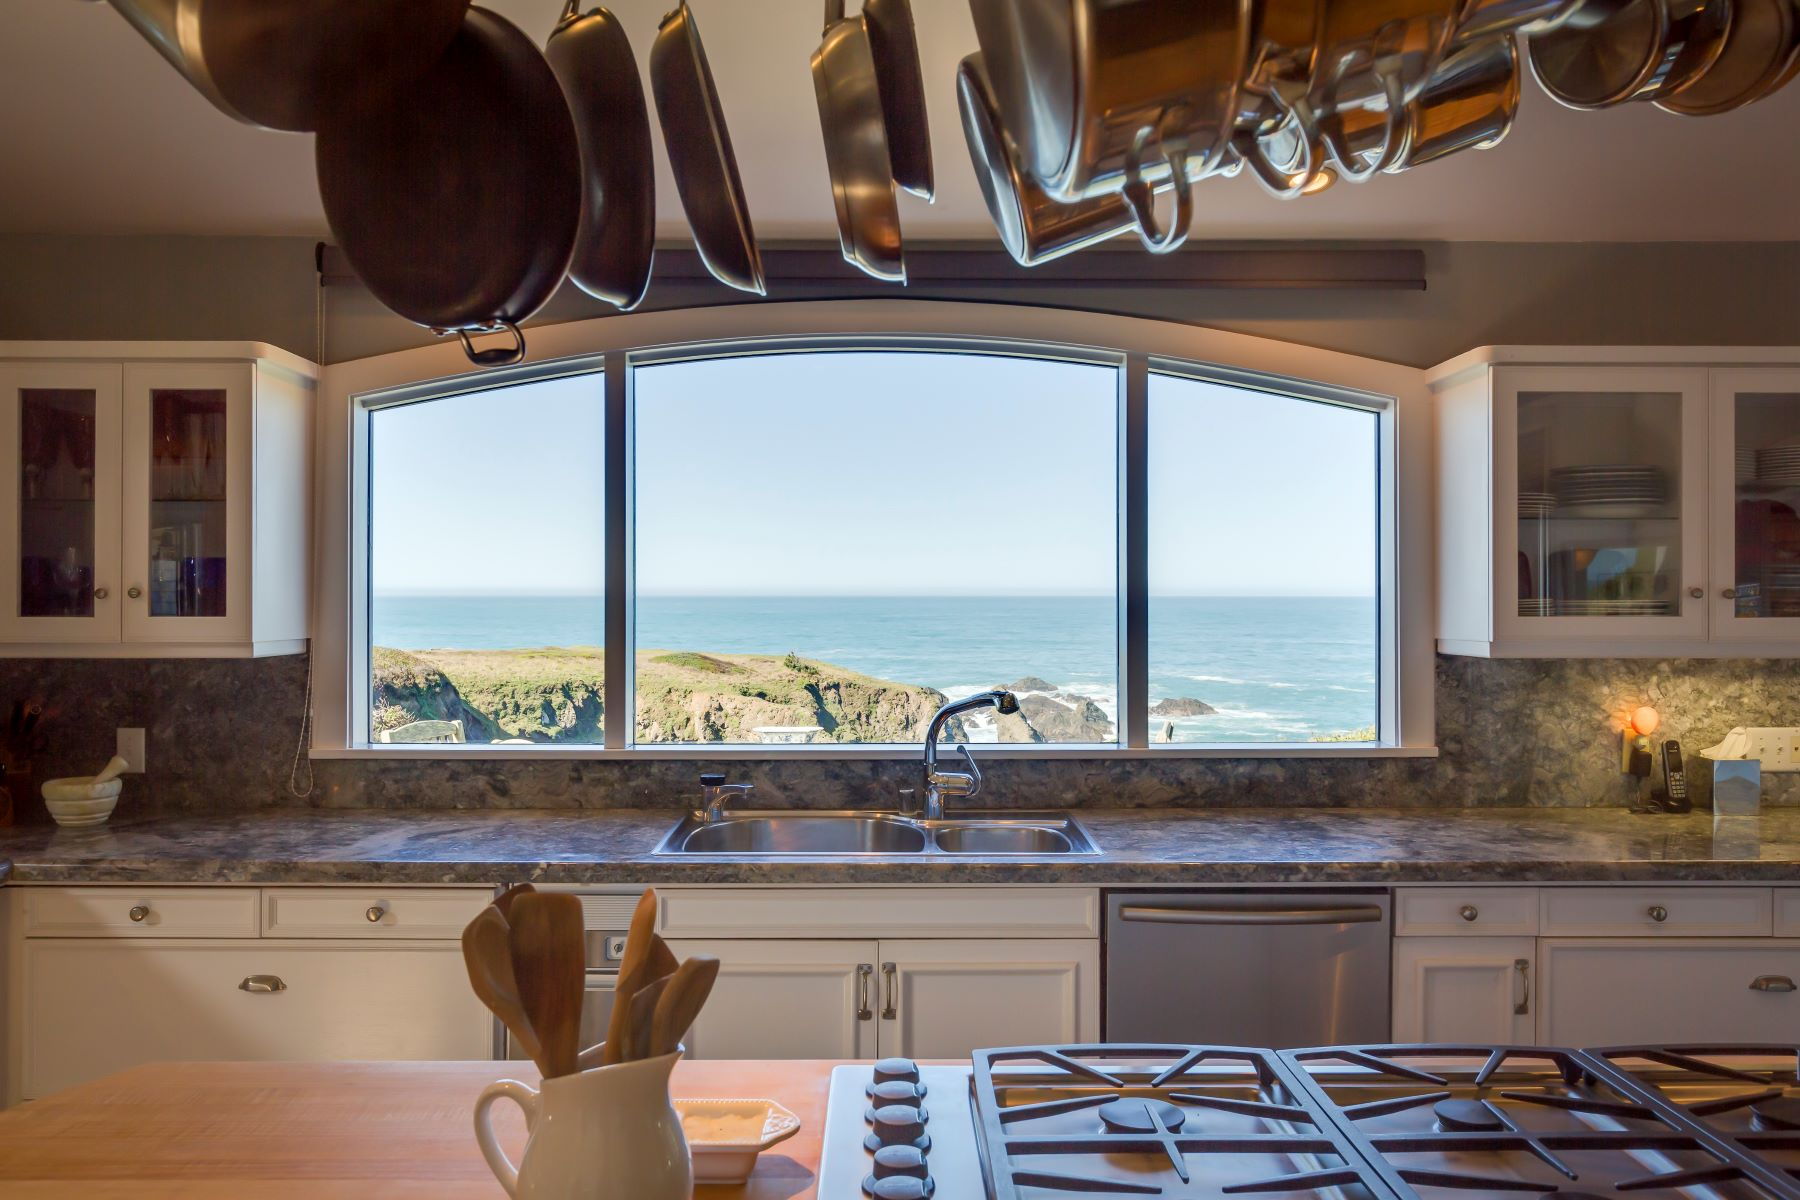 Additional photo for property listing at Sunset Cove 45275 Mar Vista Drive Mendocino, California 95460 United States